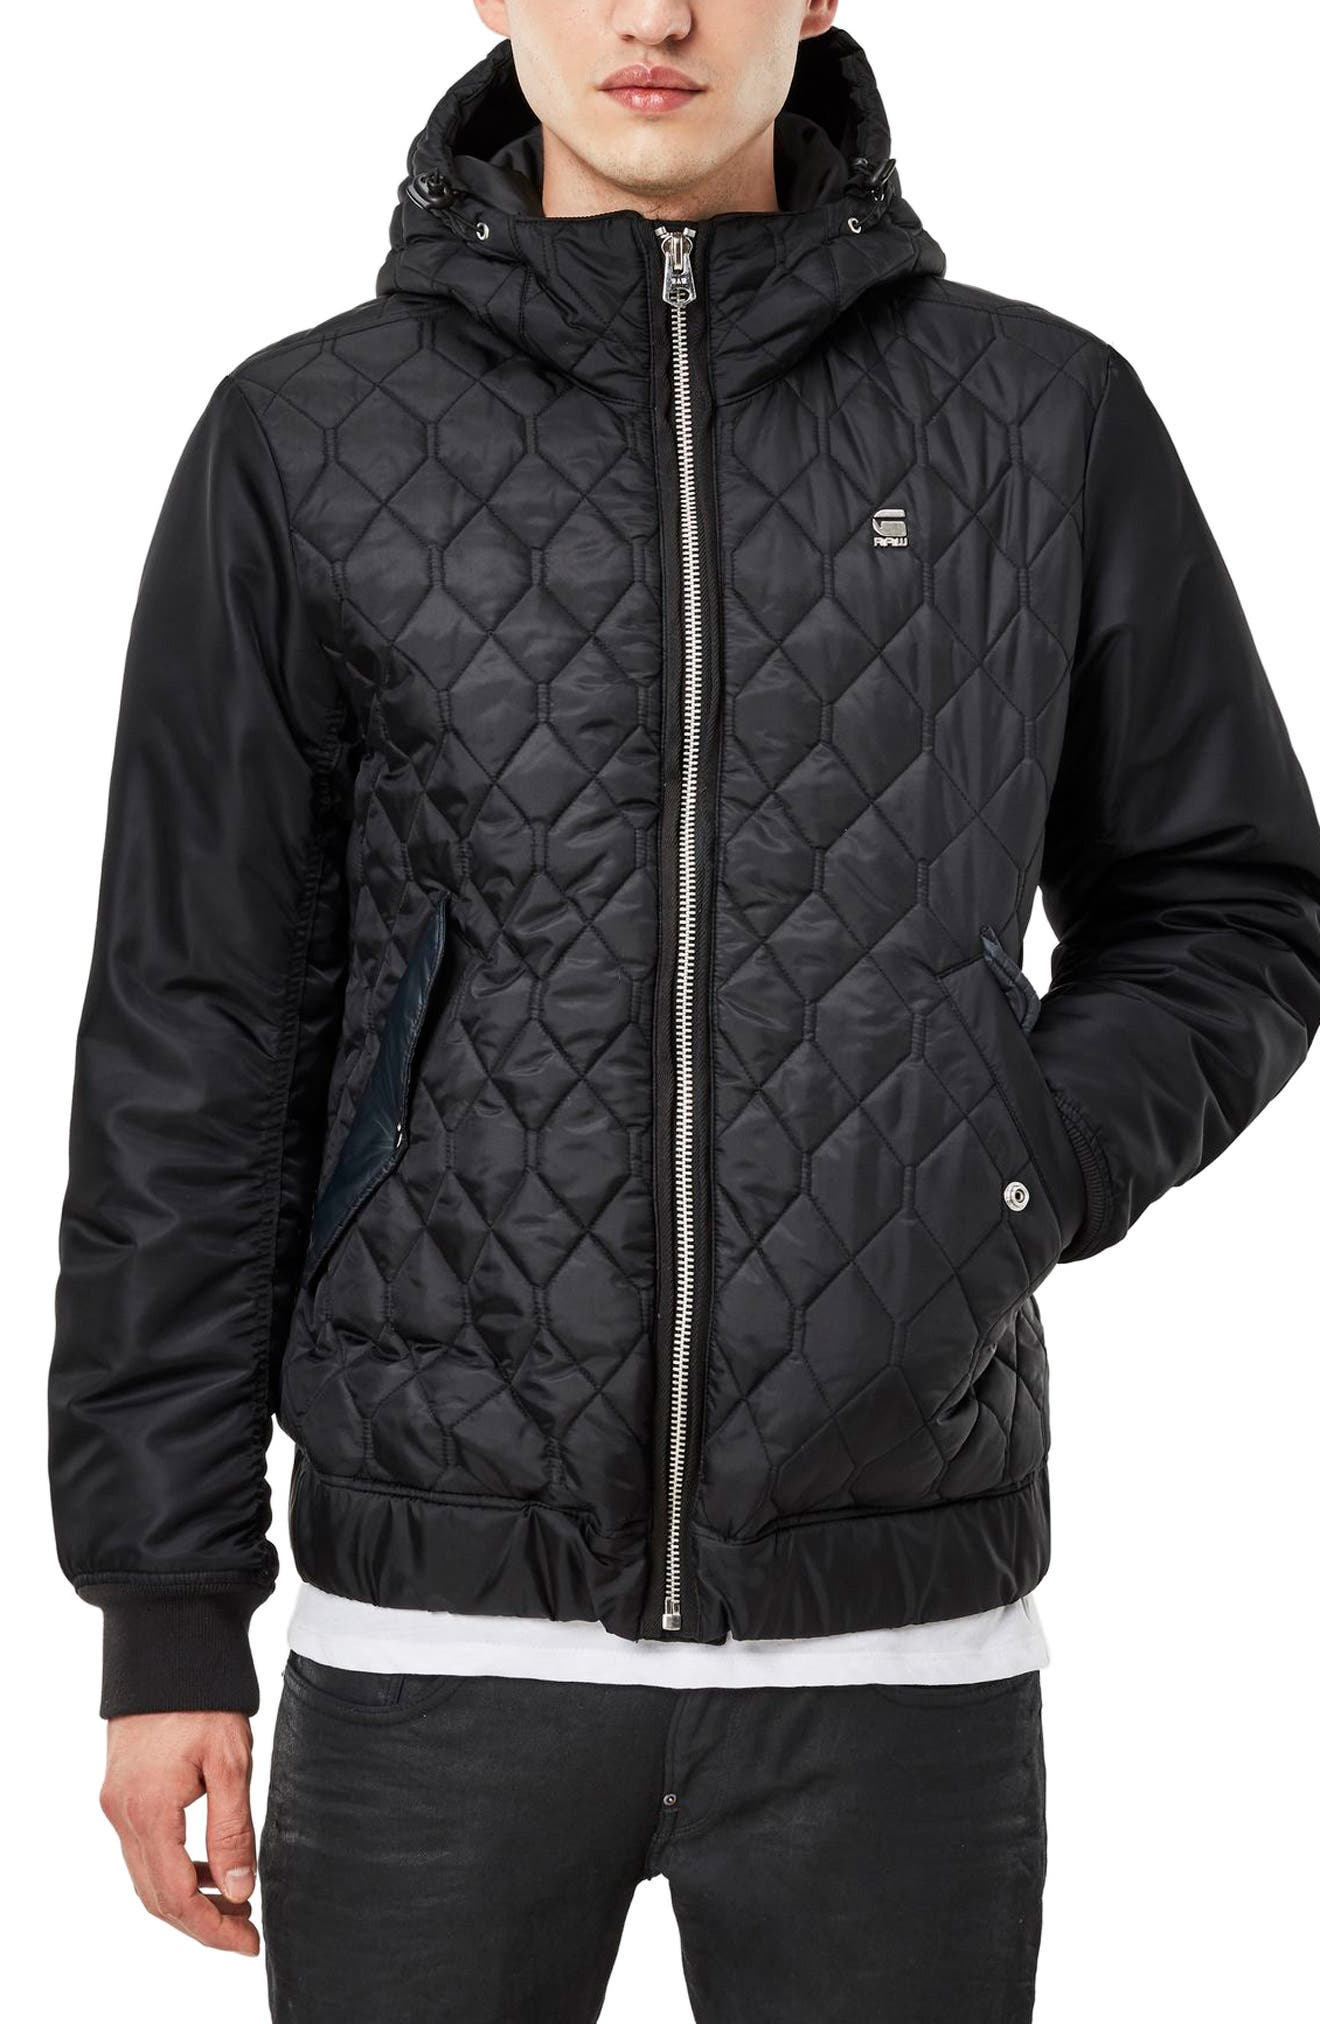 Meefic Hybrid Quilted Jacket,                             Main thumbnail 1, color,                             Black